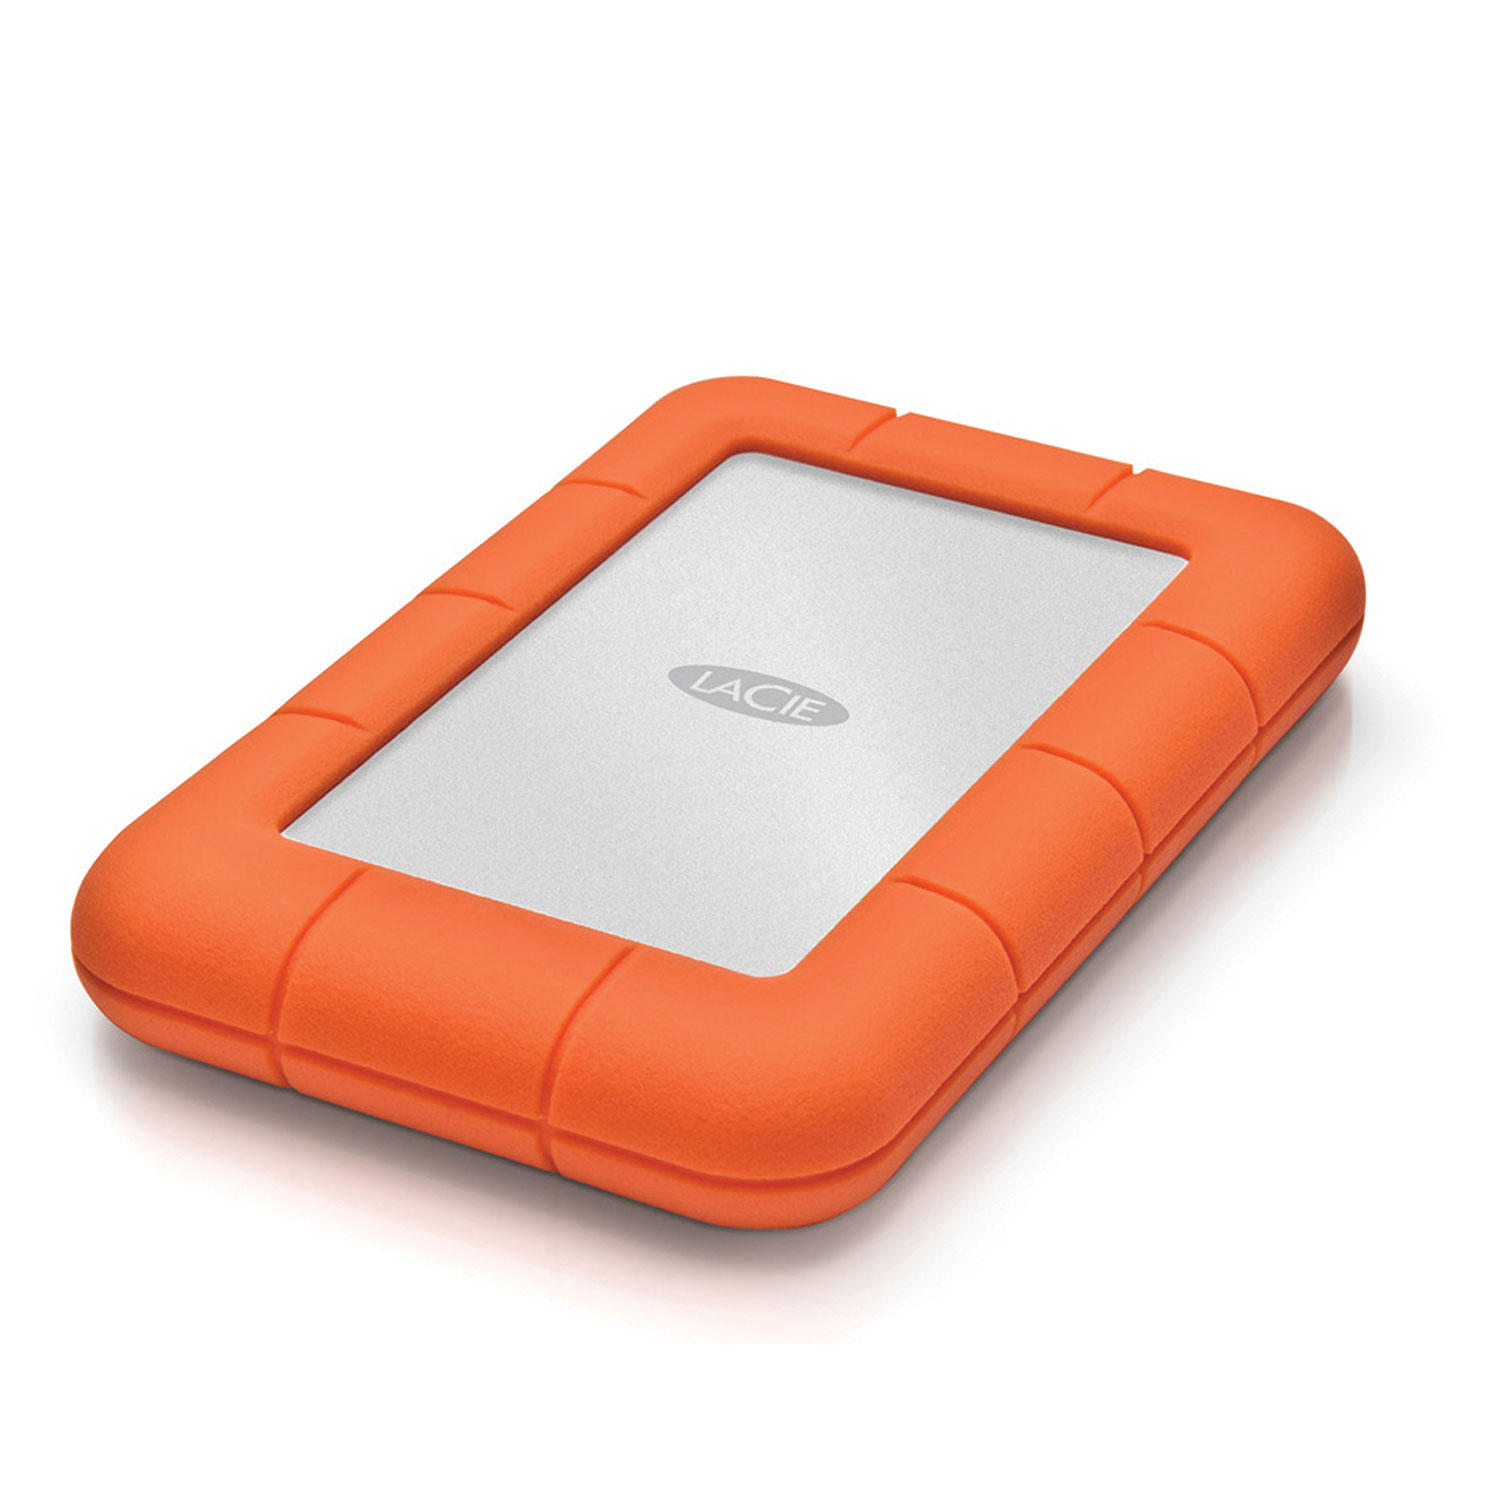 LaCie Rugged Mini 1TB External Hard Drive   Orange : Portable External Hard  Drives   Best Buy Canada